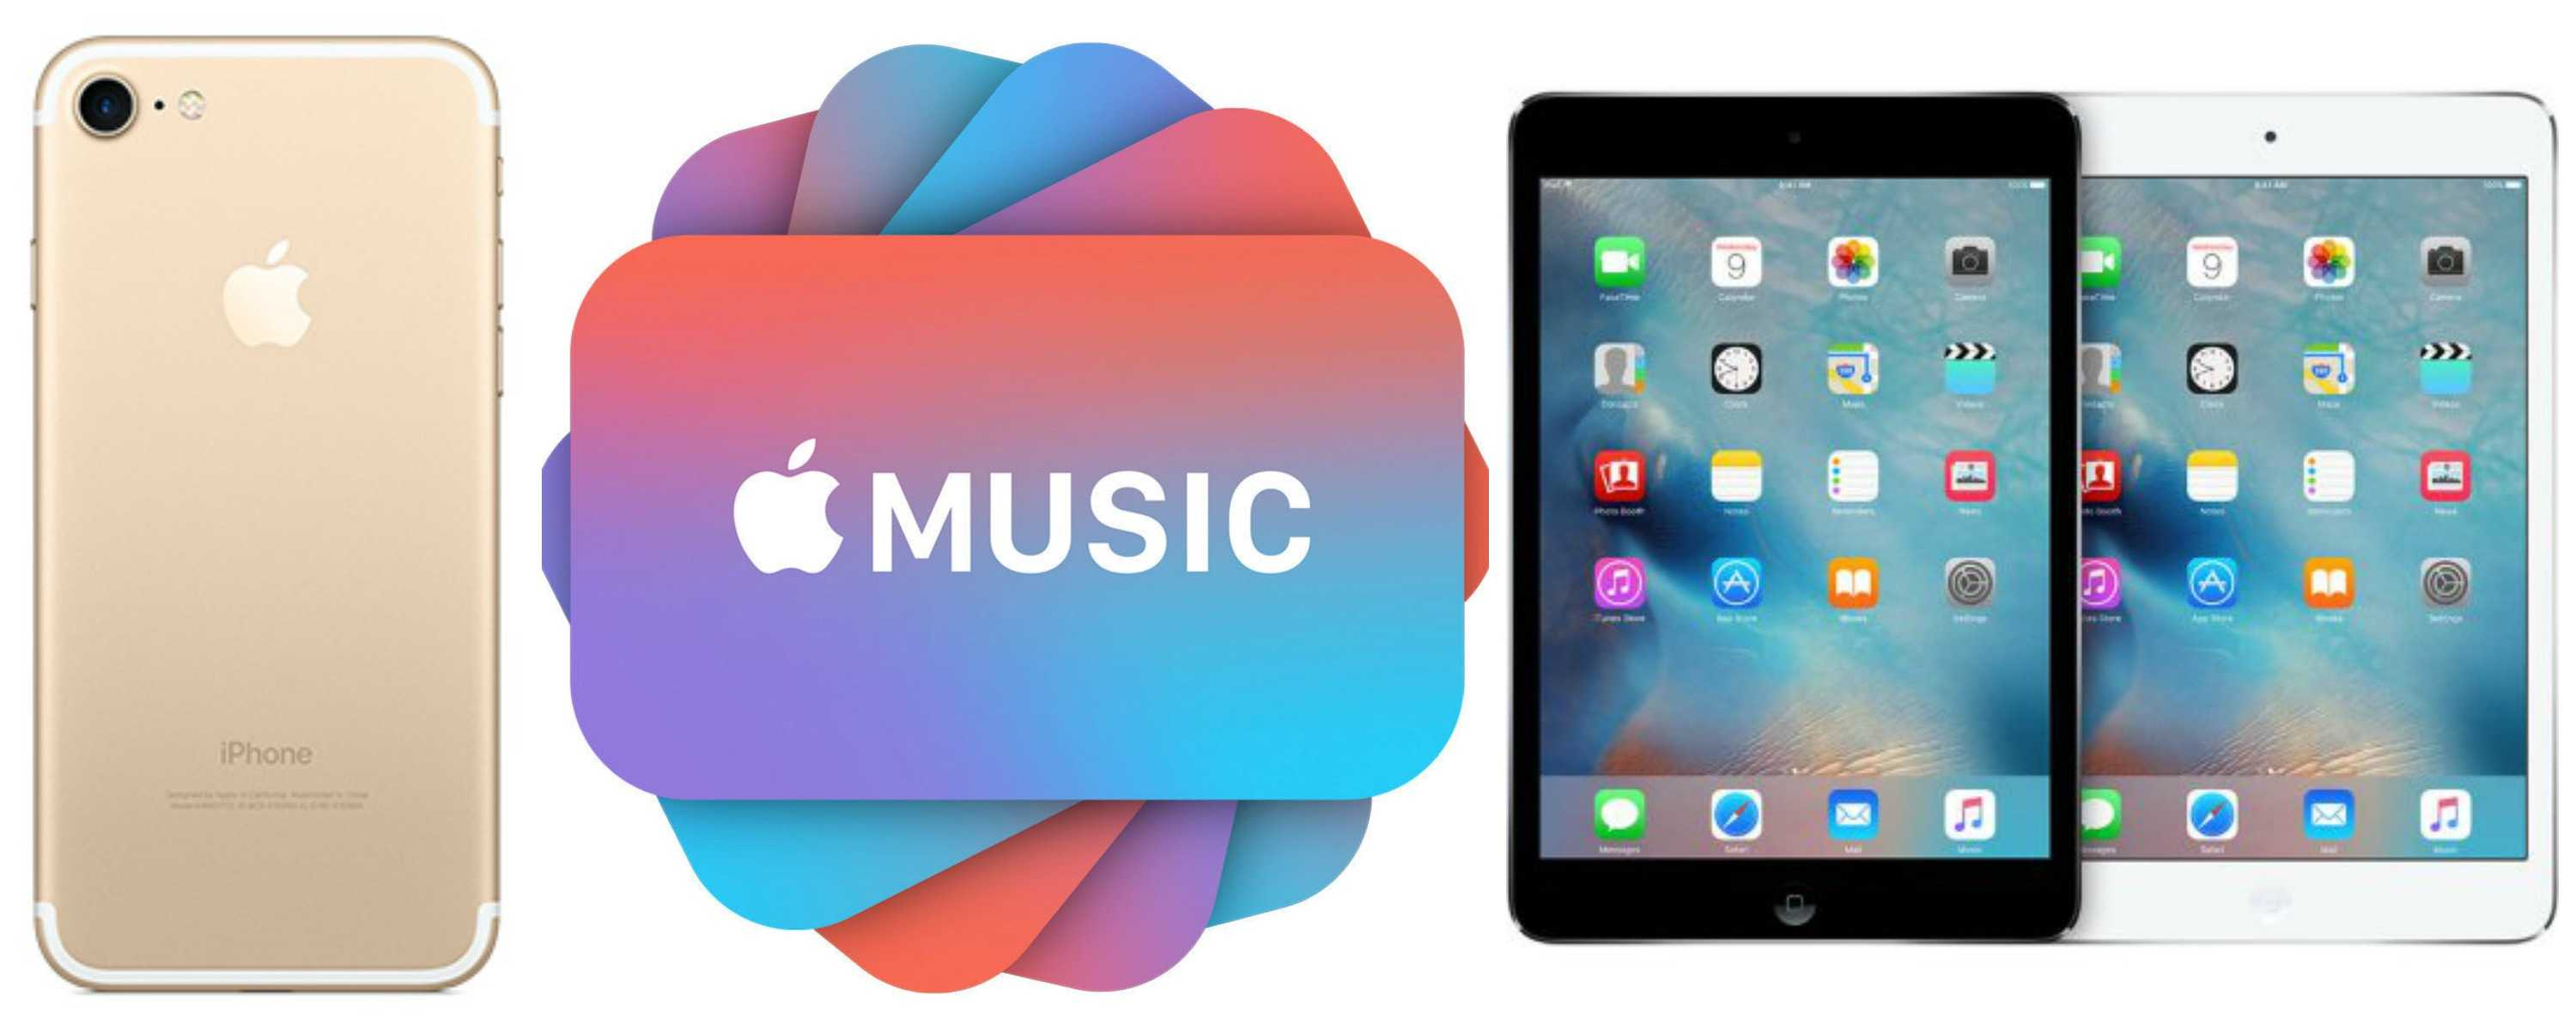 Week S Best Apple Deals Iphone 7 Apple Music And More Cult Of Mac